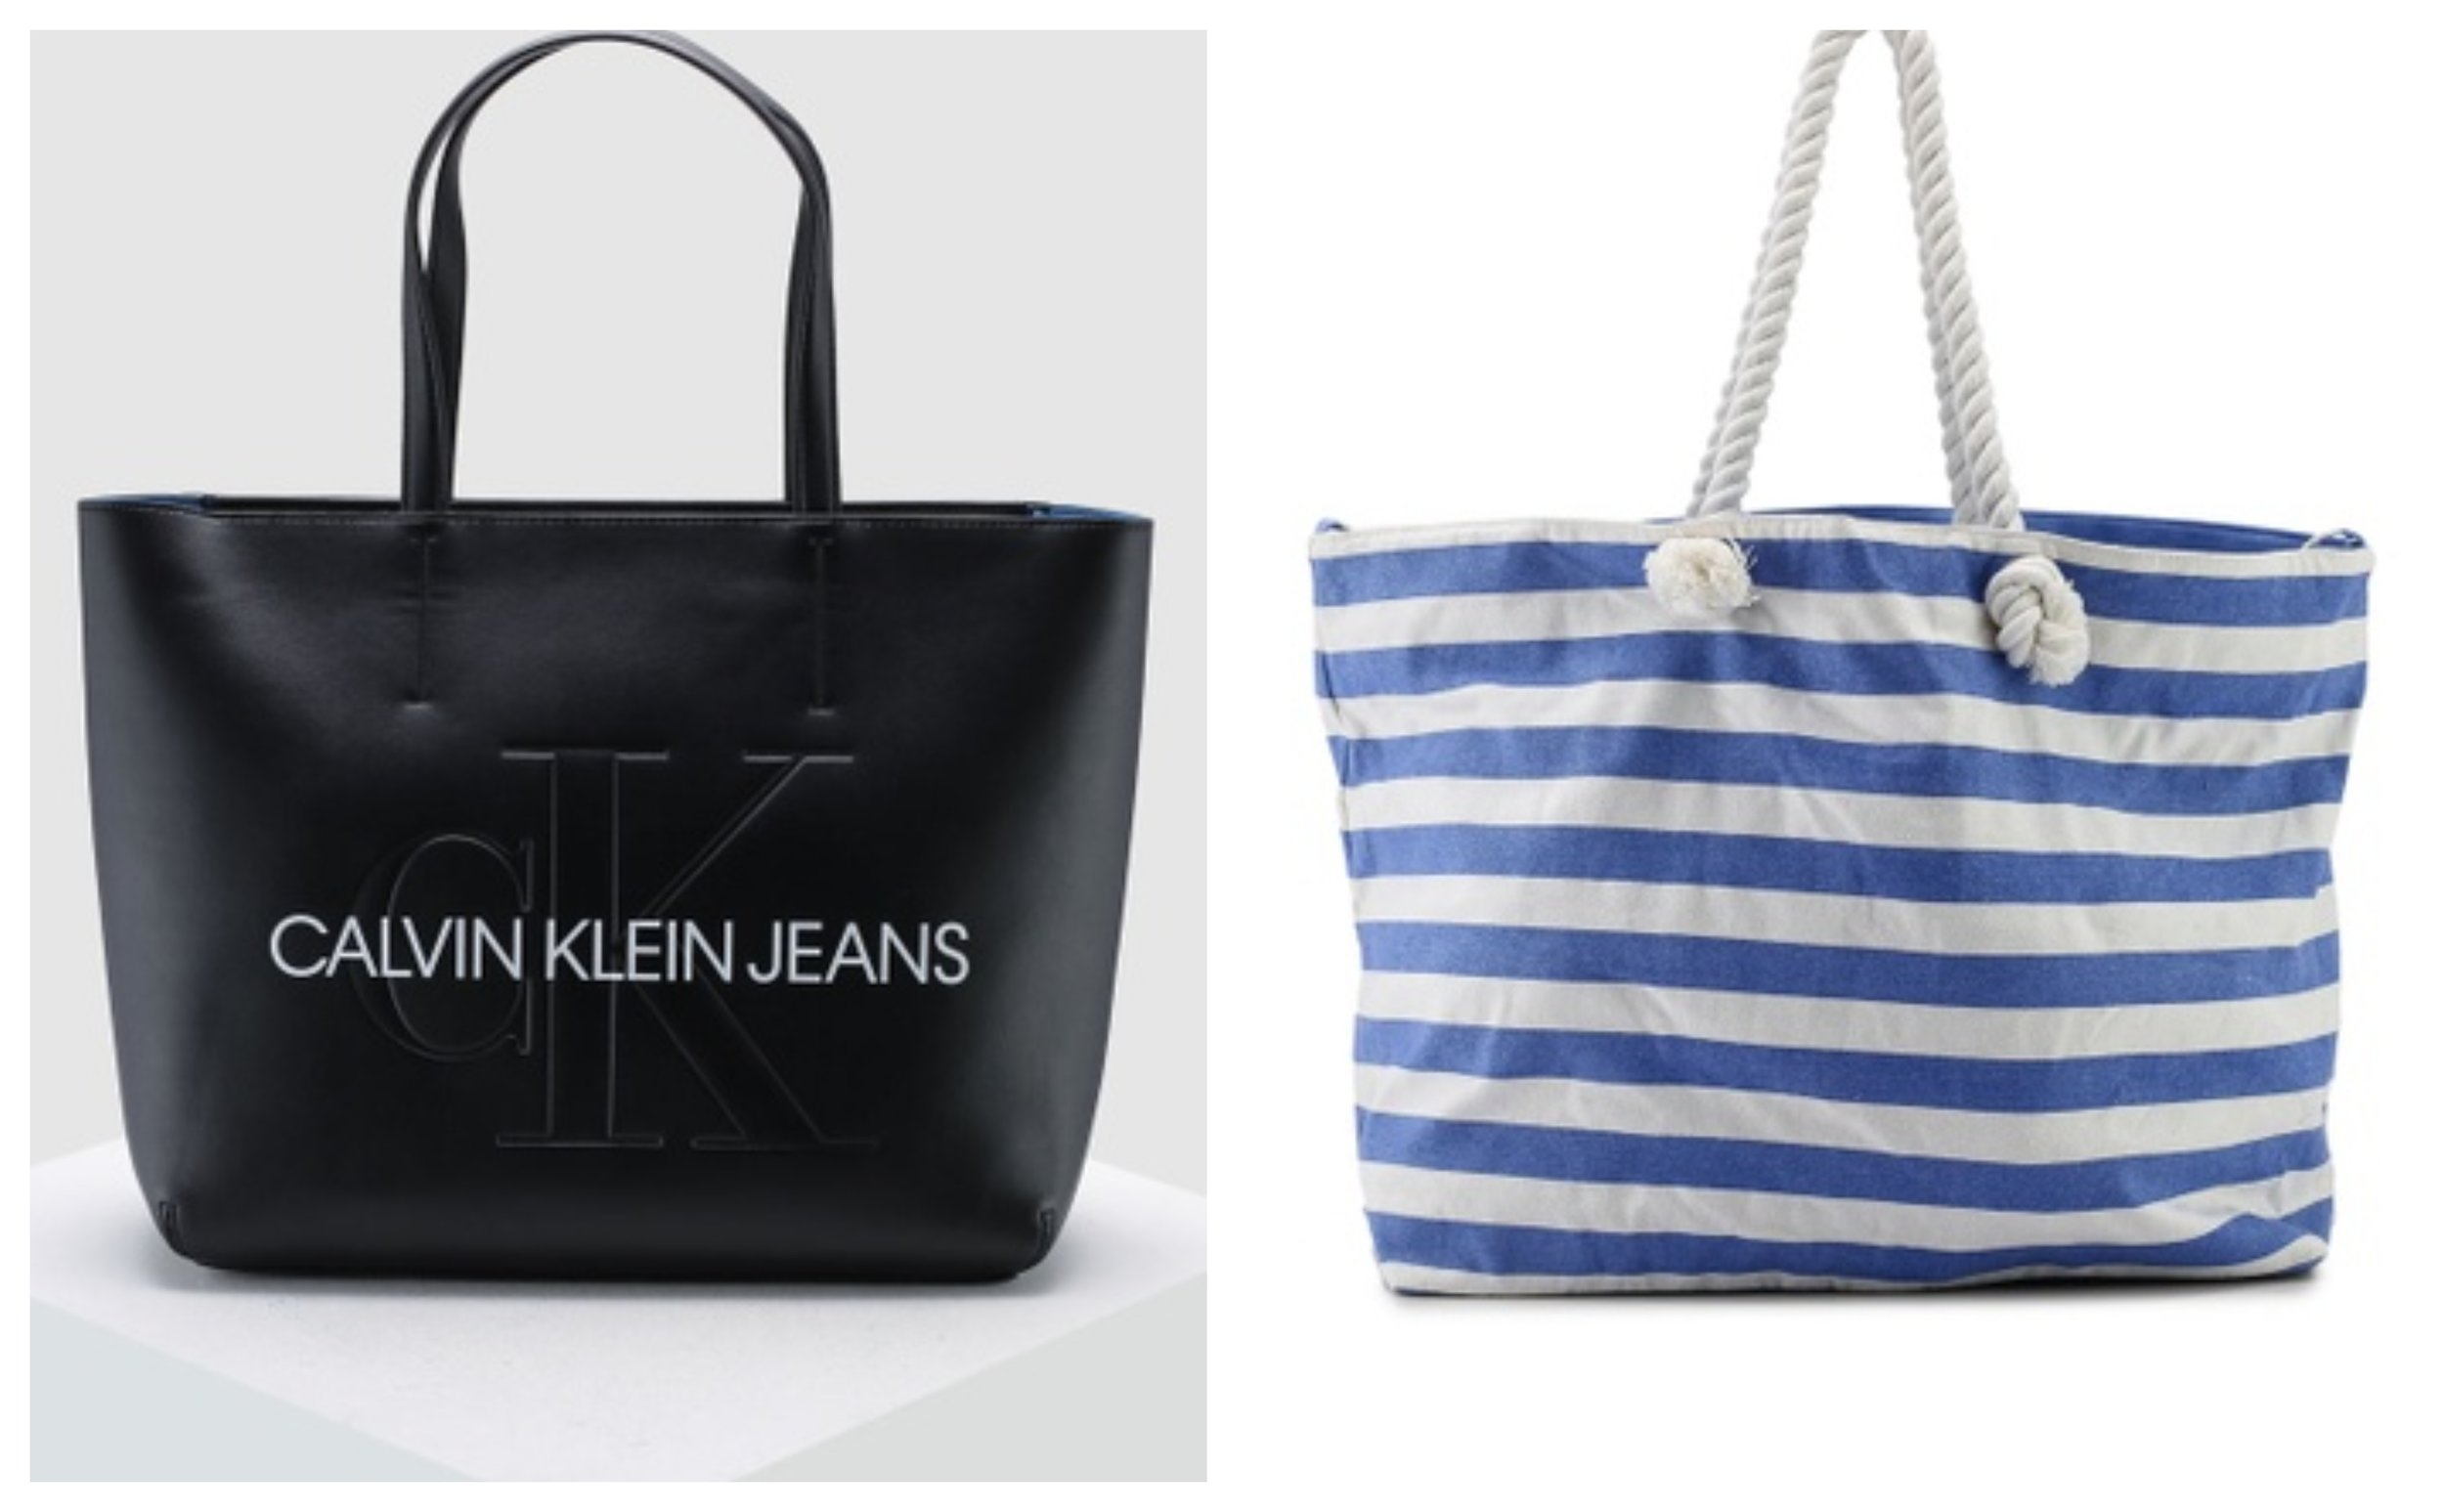 Calvin Klein Brand Print Tote Bag and OVS Stripe Beach Bag